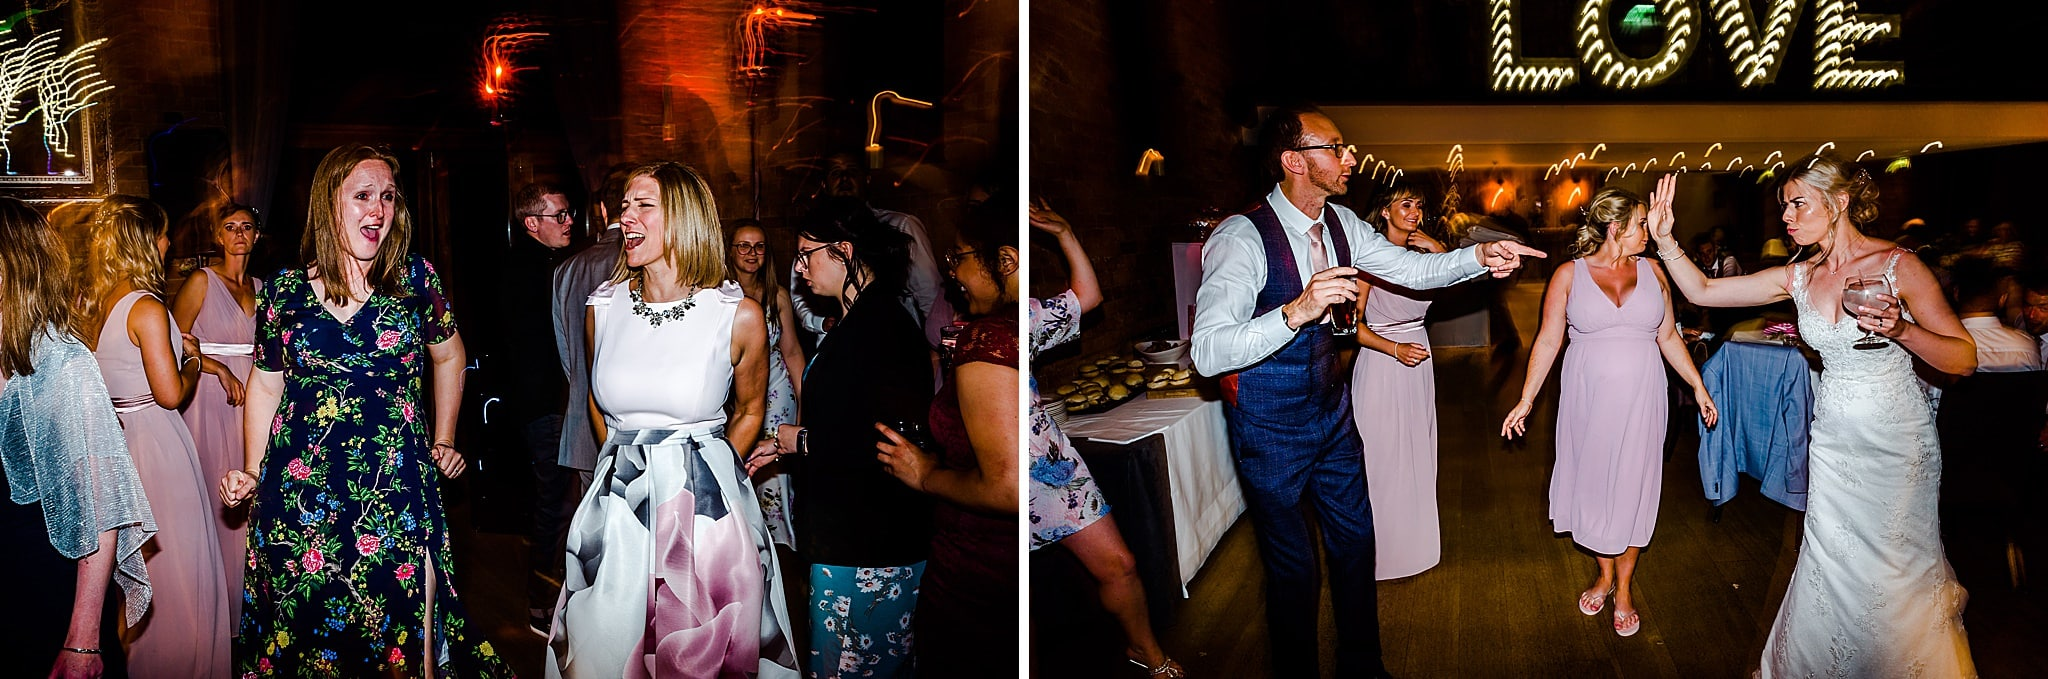 Bride and groom dance with their guests at Carriage Hall